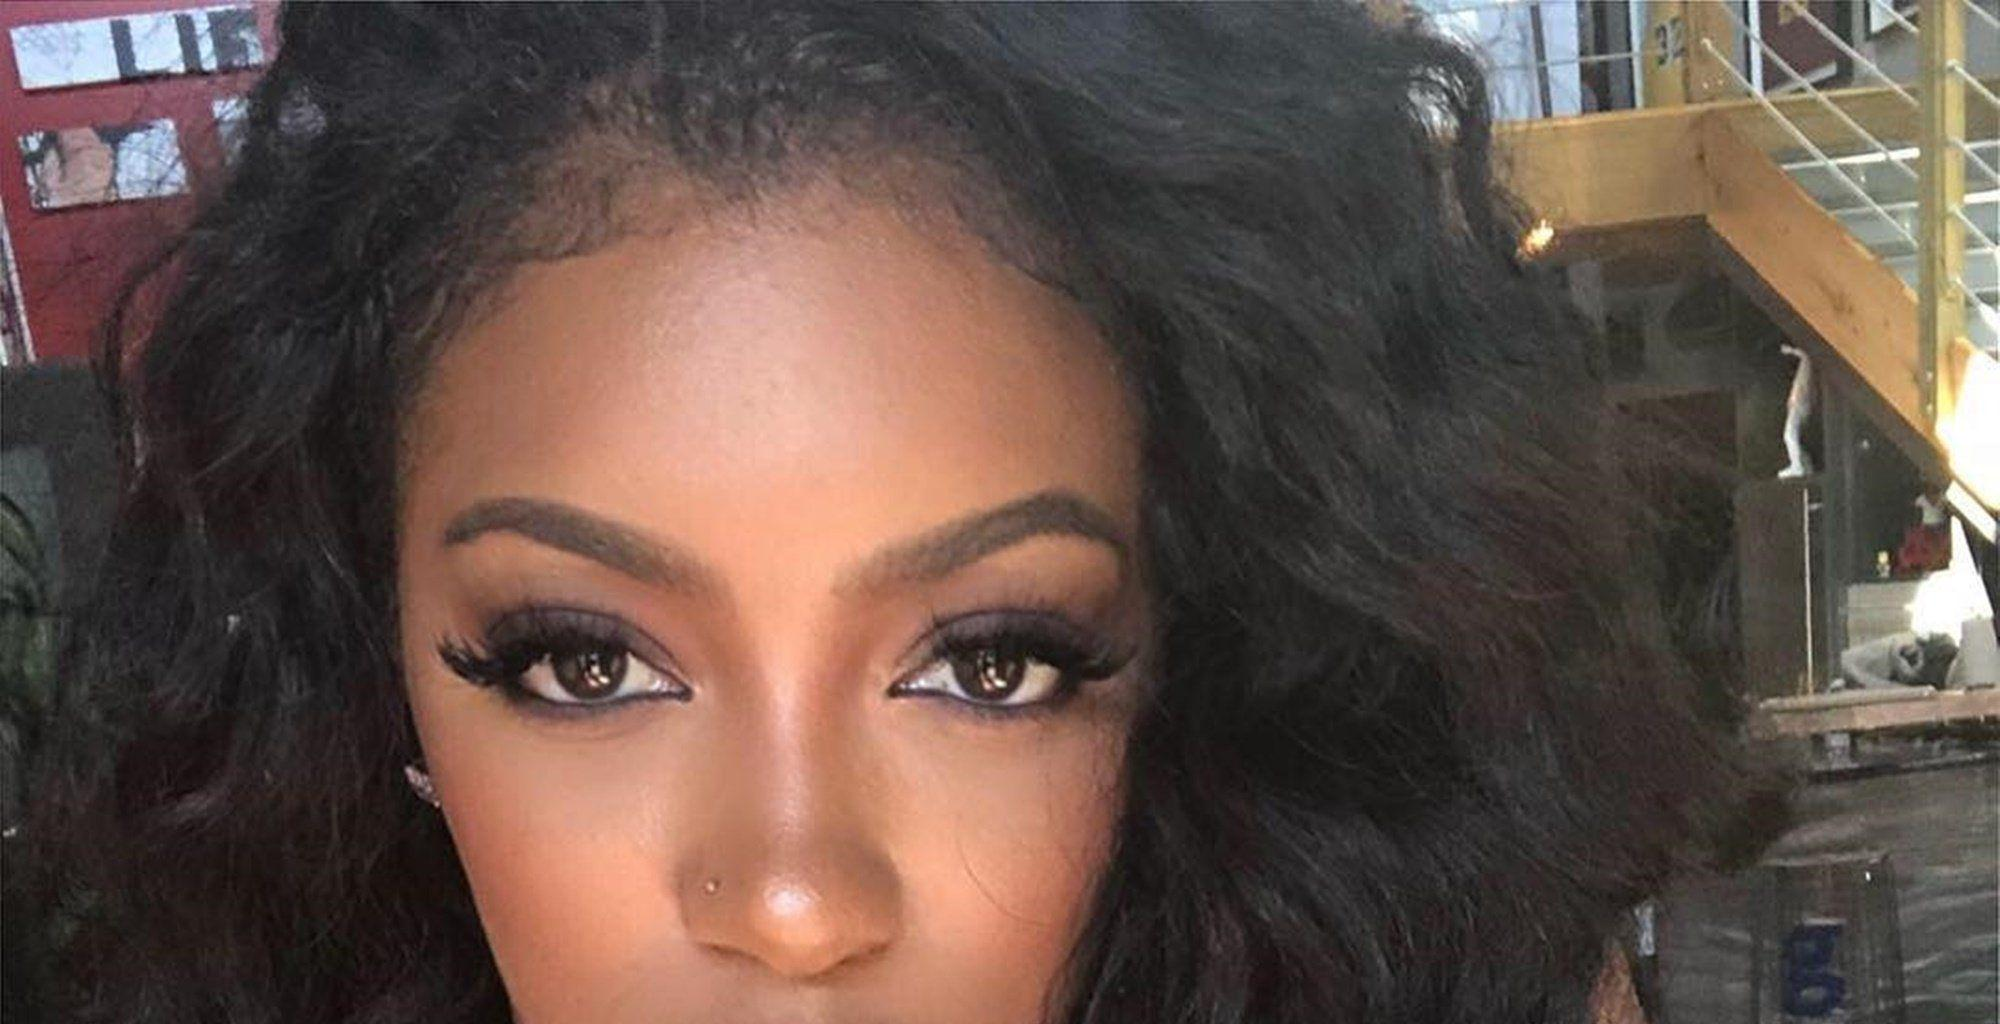 Porsha Williams Reveals Fans The Sweetest Photo She's Ever Seen - It's With Her Fiance And Daughter